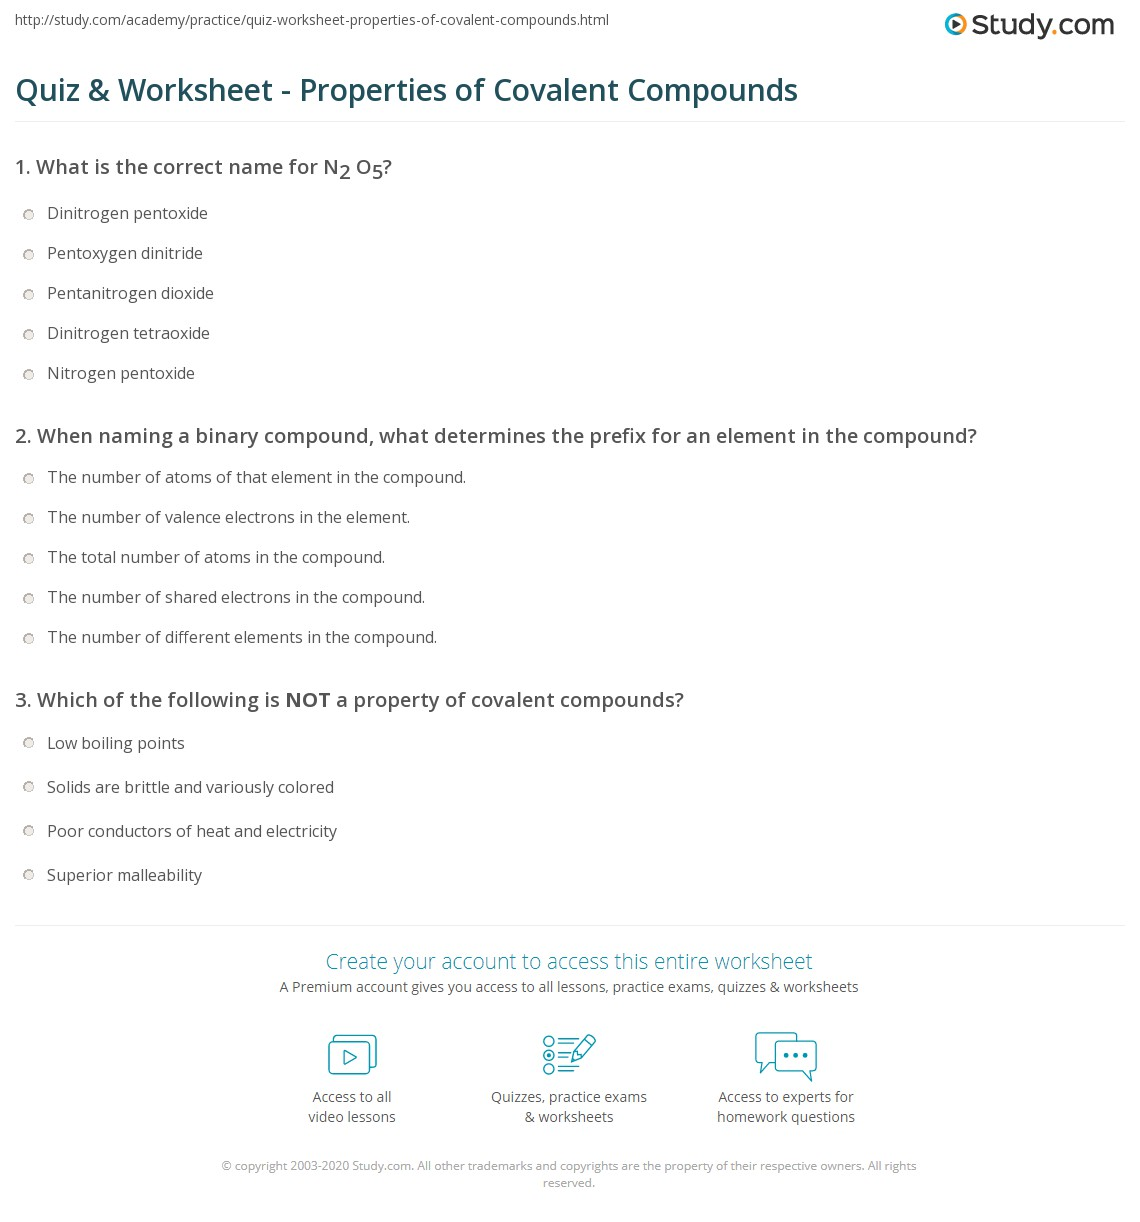 Quiz & Worksheet - Properties of Covalent Compounds | Study.com